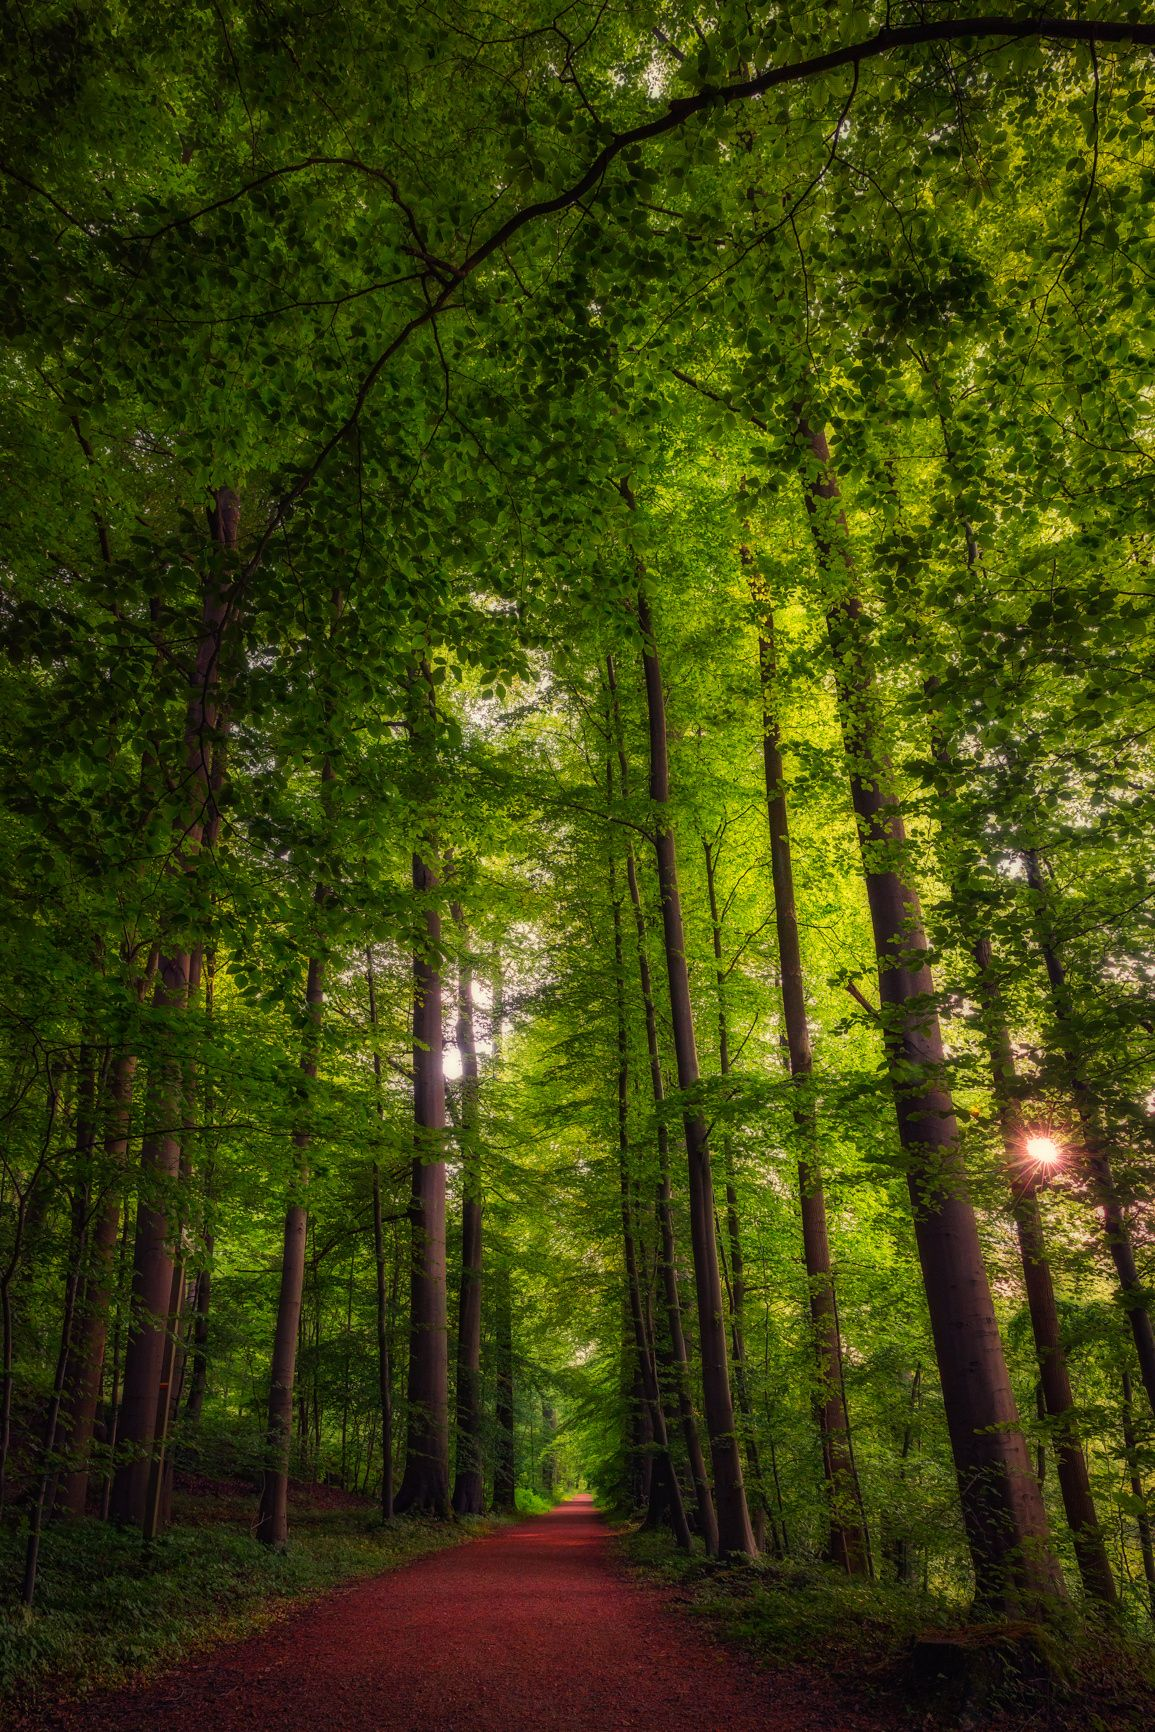 Forest path by Jean-Francois Chaubard on 500px